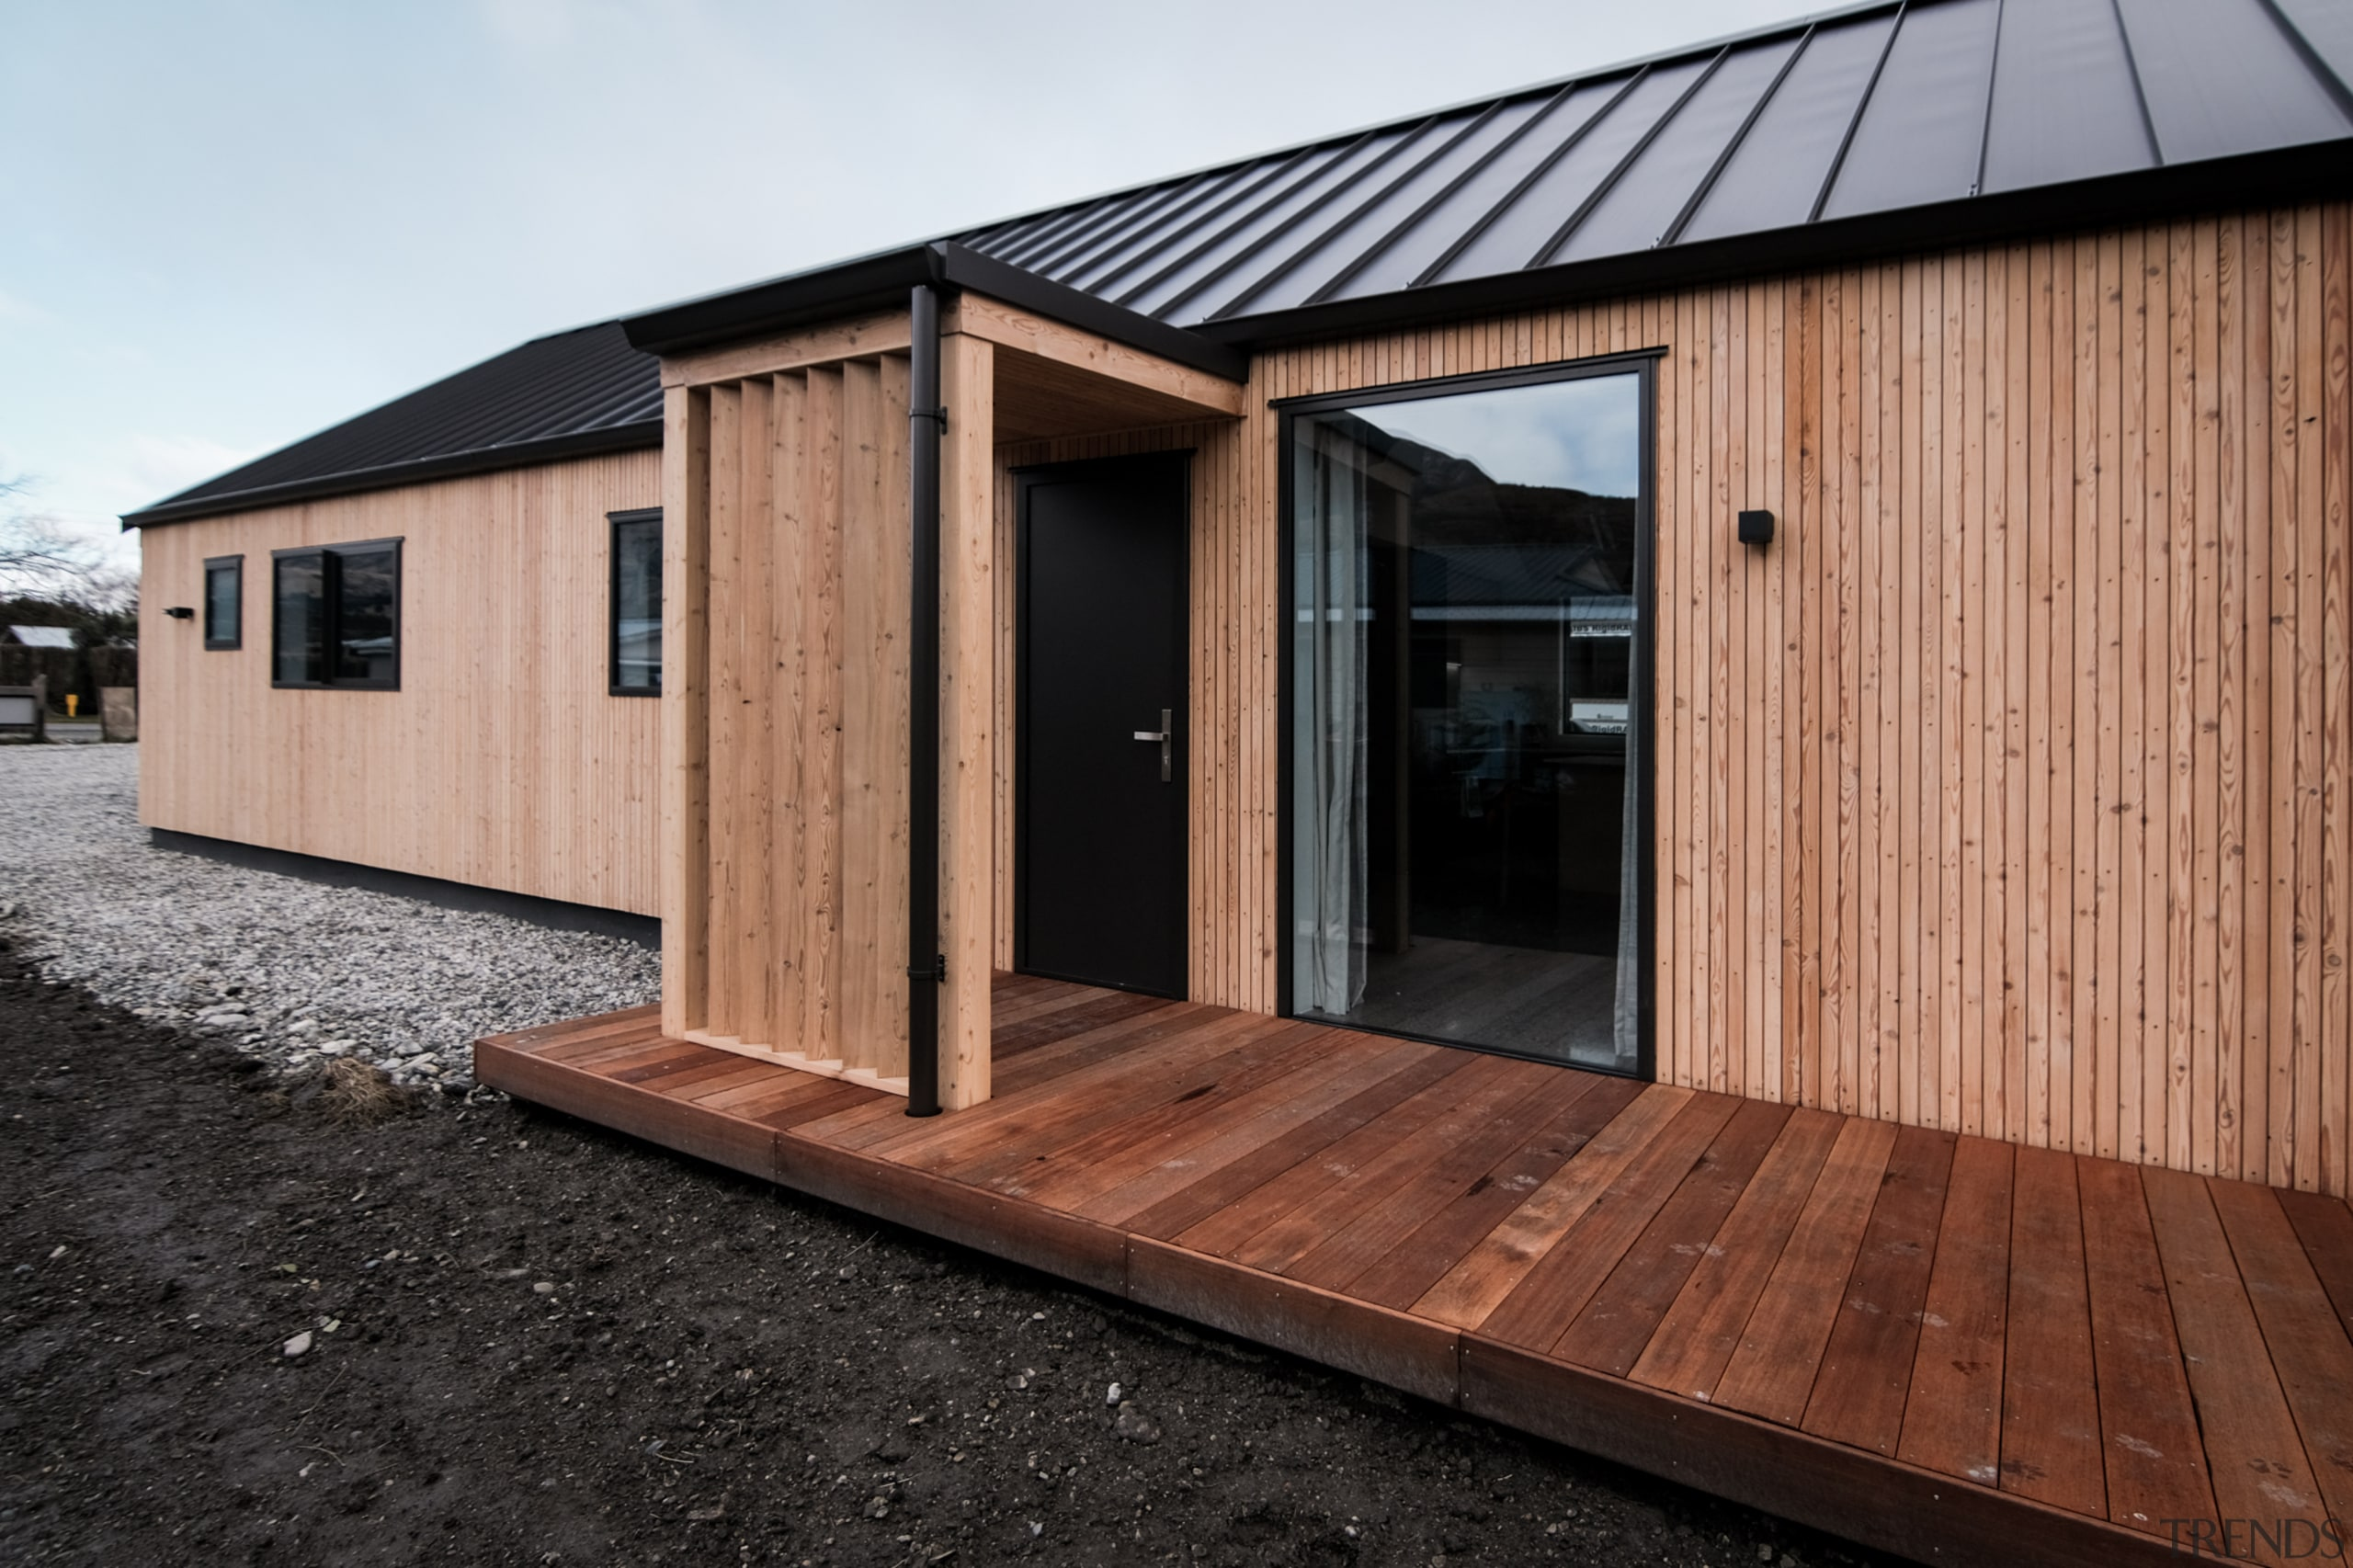 Timber cladding, plenty of full-height windows and rugged